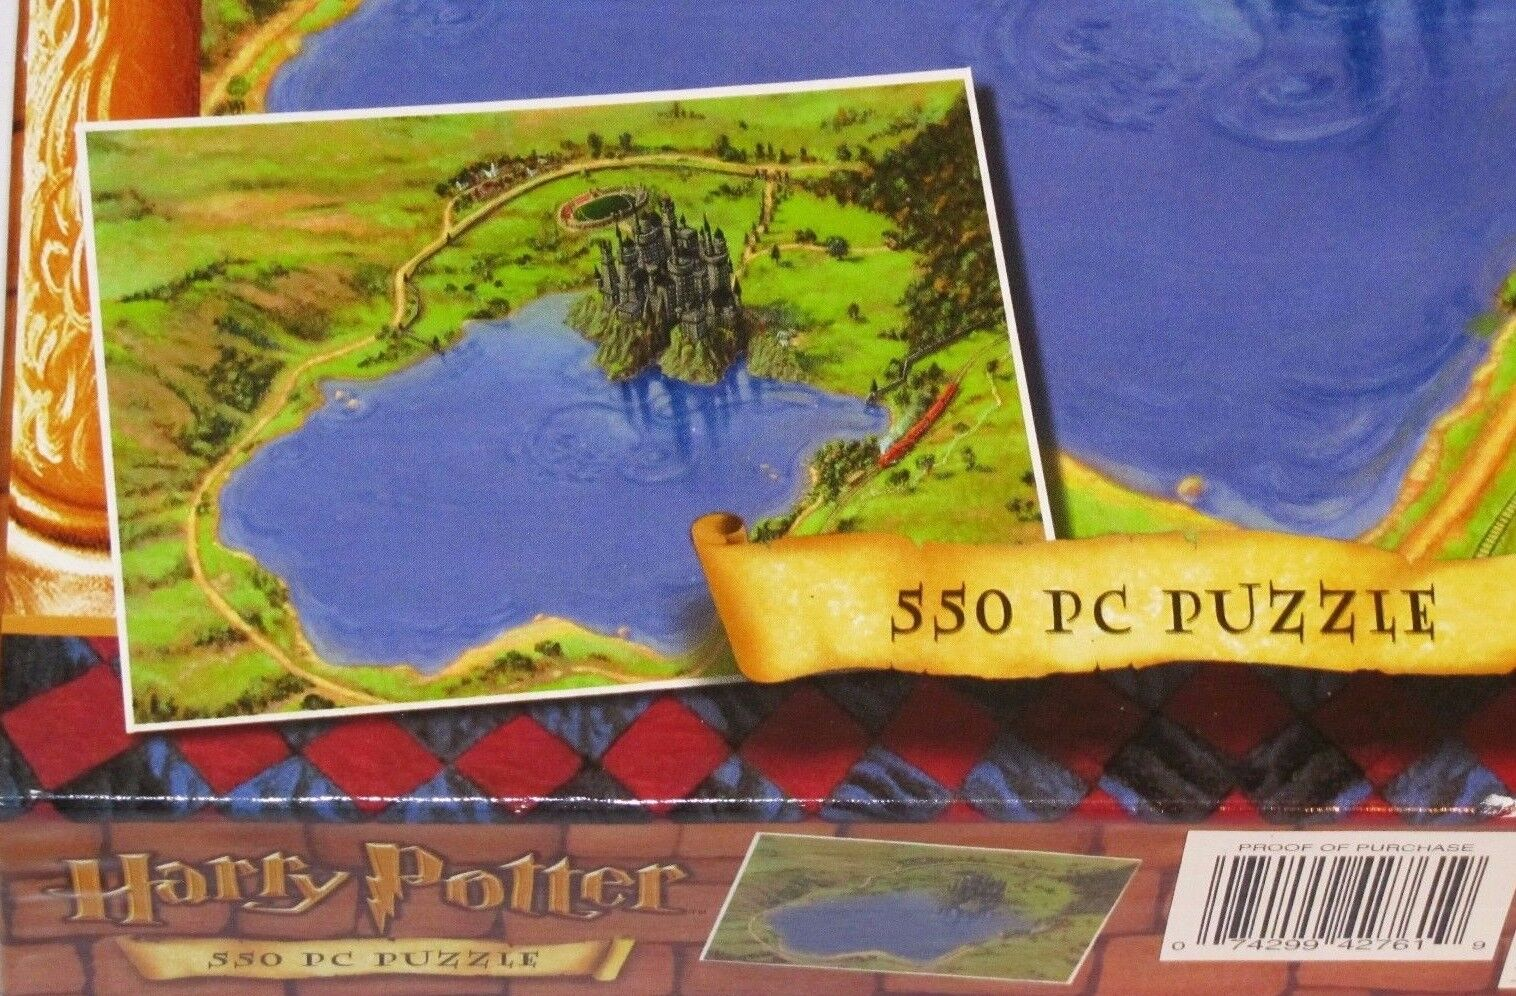 Harry Potter Hogwarts School Grounds and Castle PC 550 PC Castle Puzzle - NEW/SEALED 823e2f